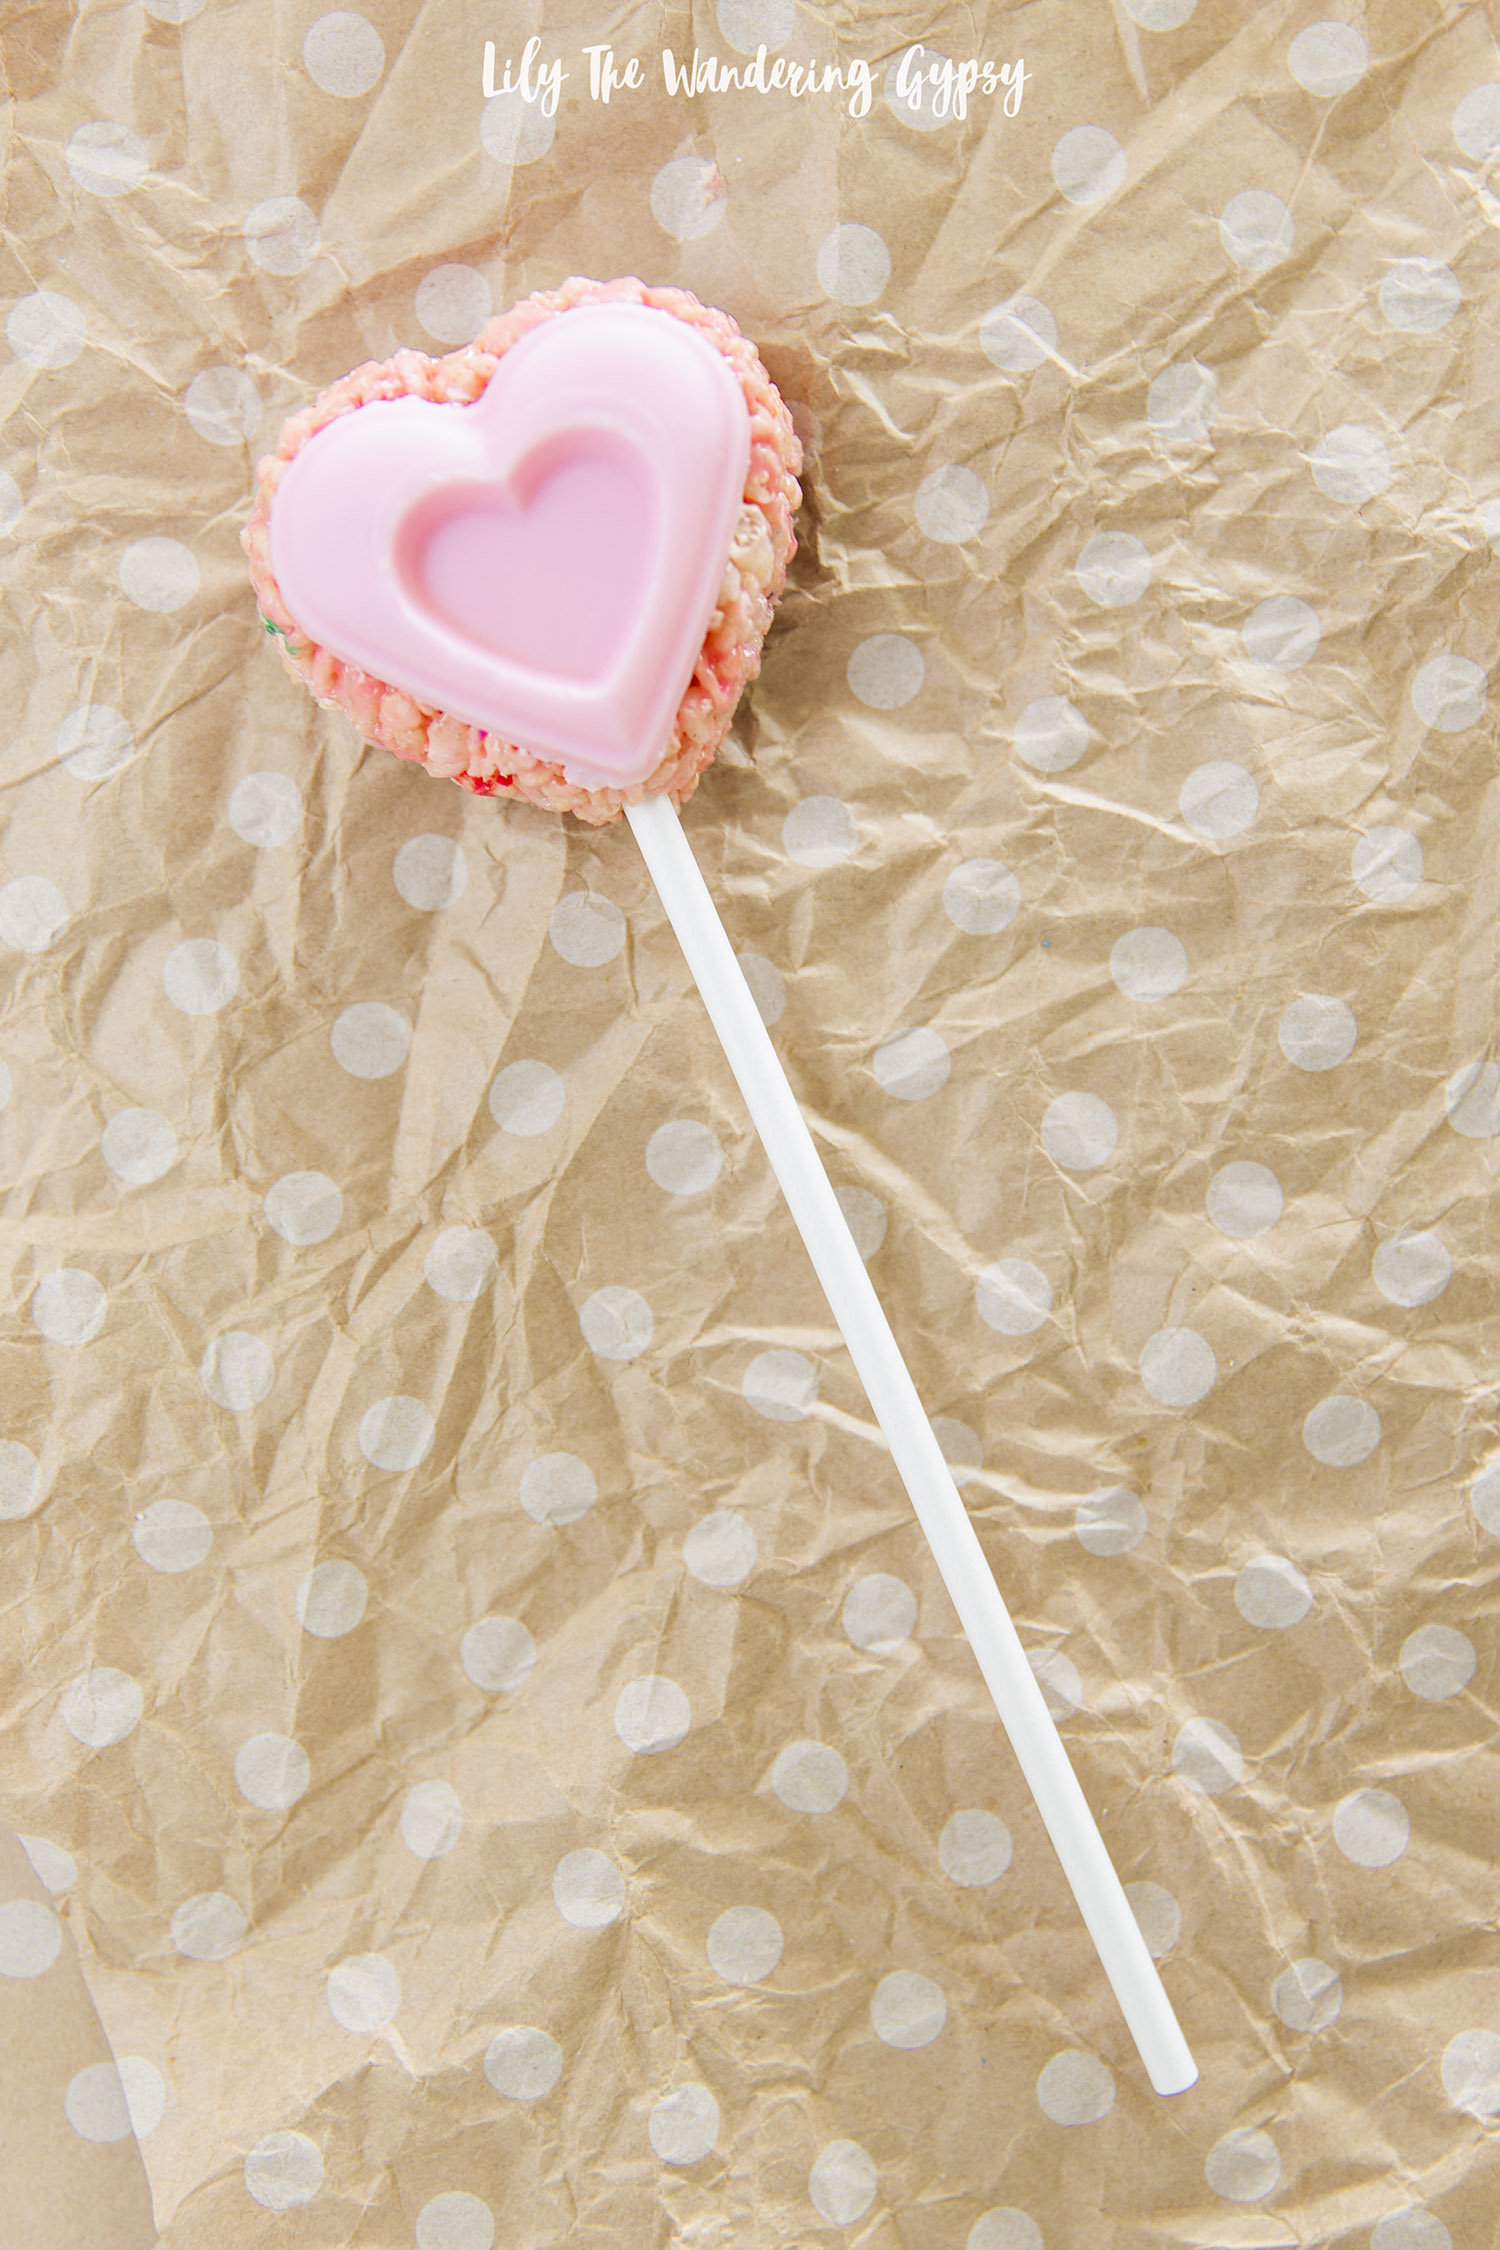 Adorable Heart Shaped Rice Krispy Treats